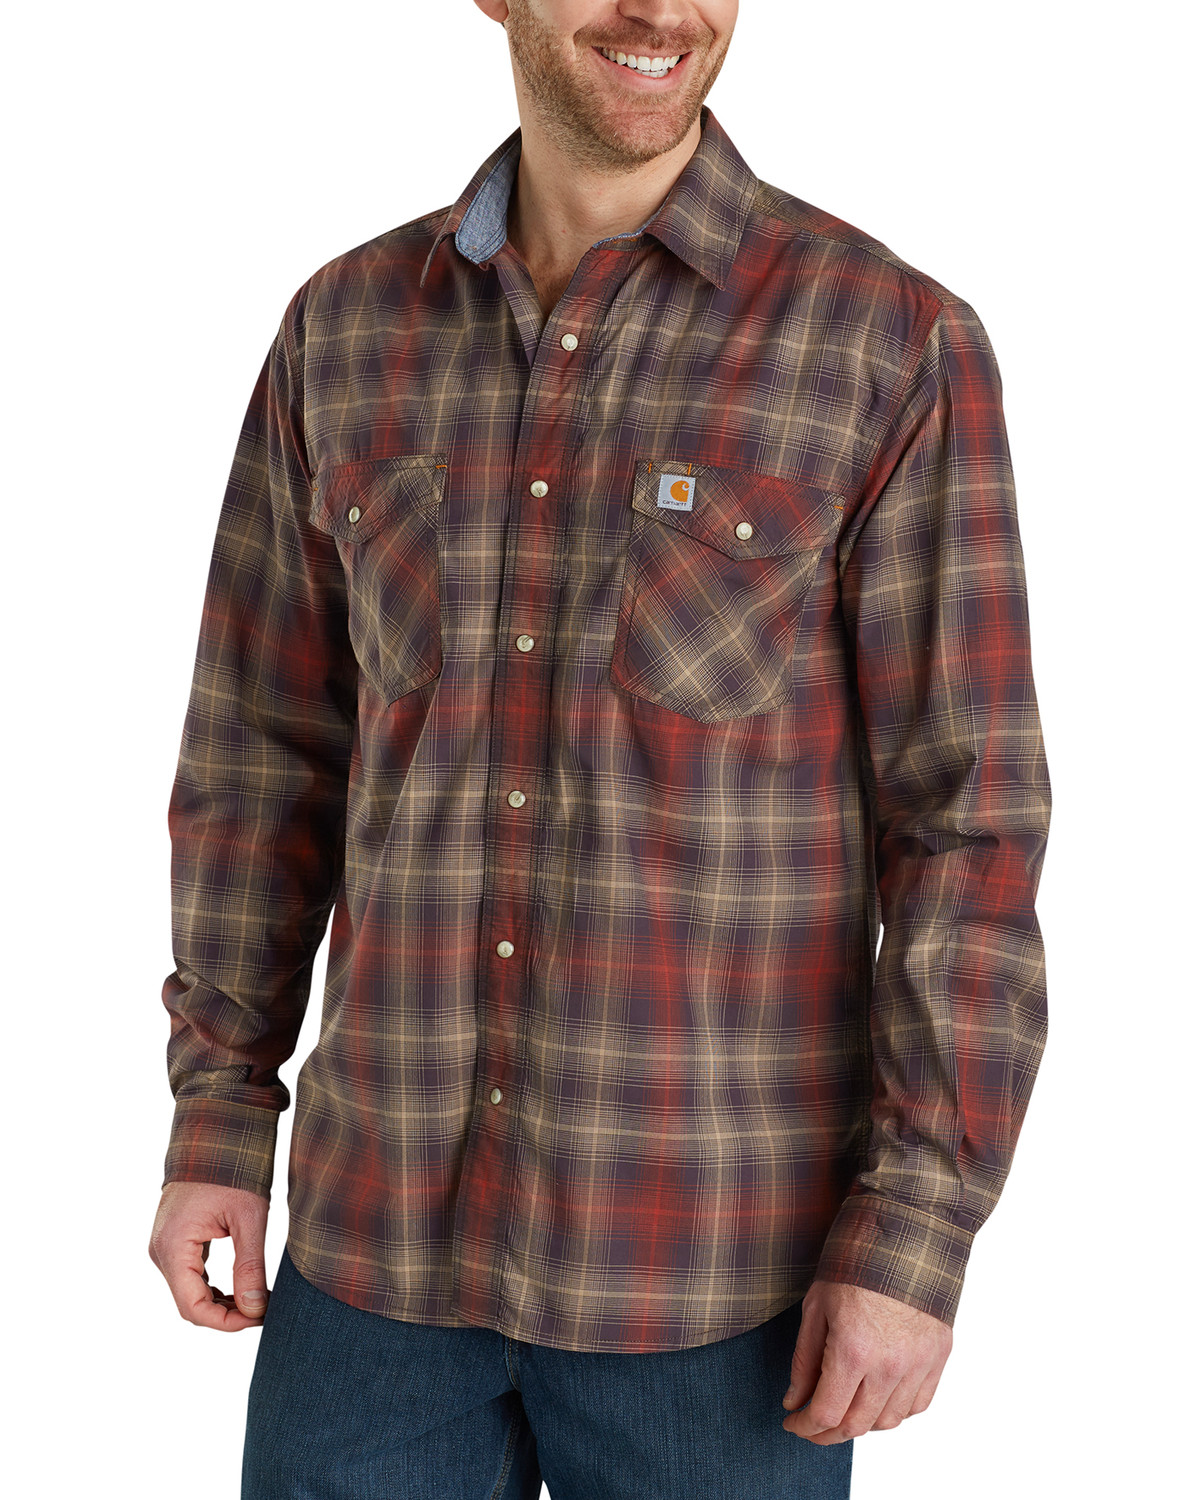 Carhartt Mens Long Sleeve Plaid Shirt